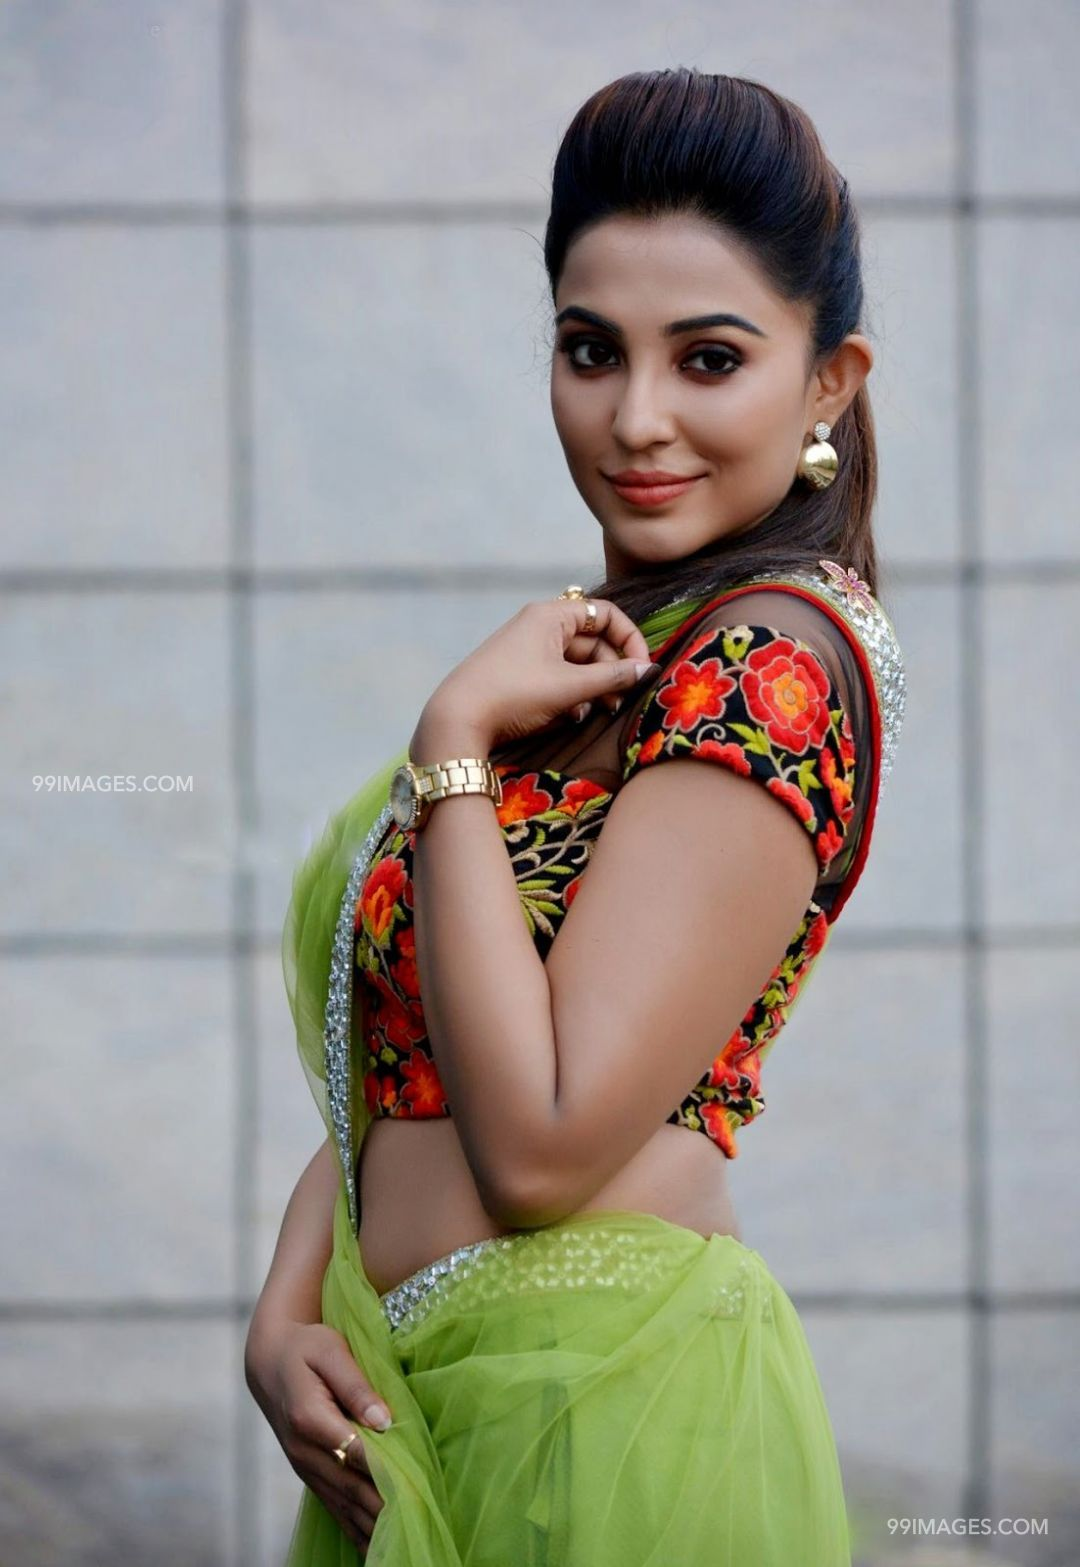 Parvathy Nair nudes (15 foto and video), Pussy, Is a cute, Selfie, panties 2018